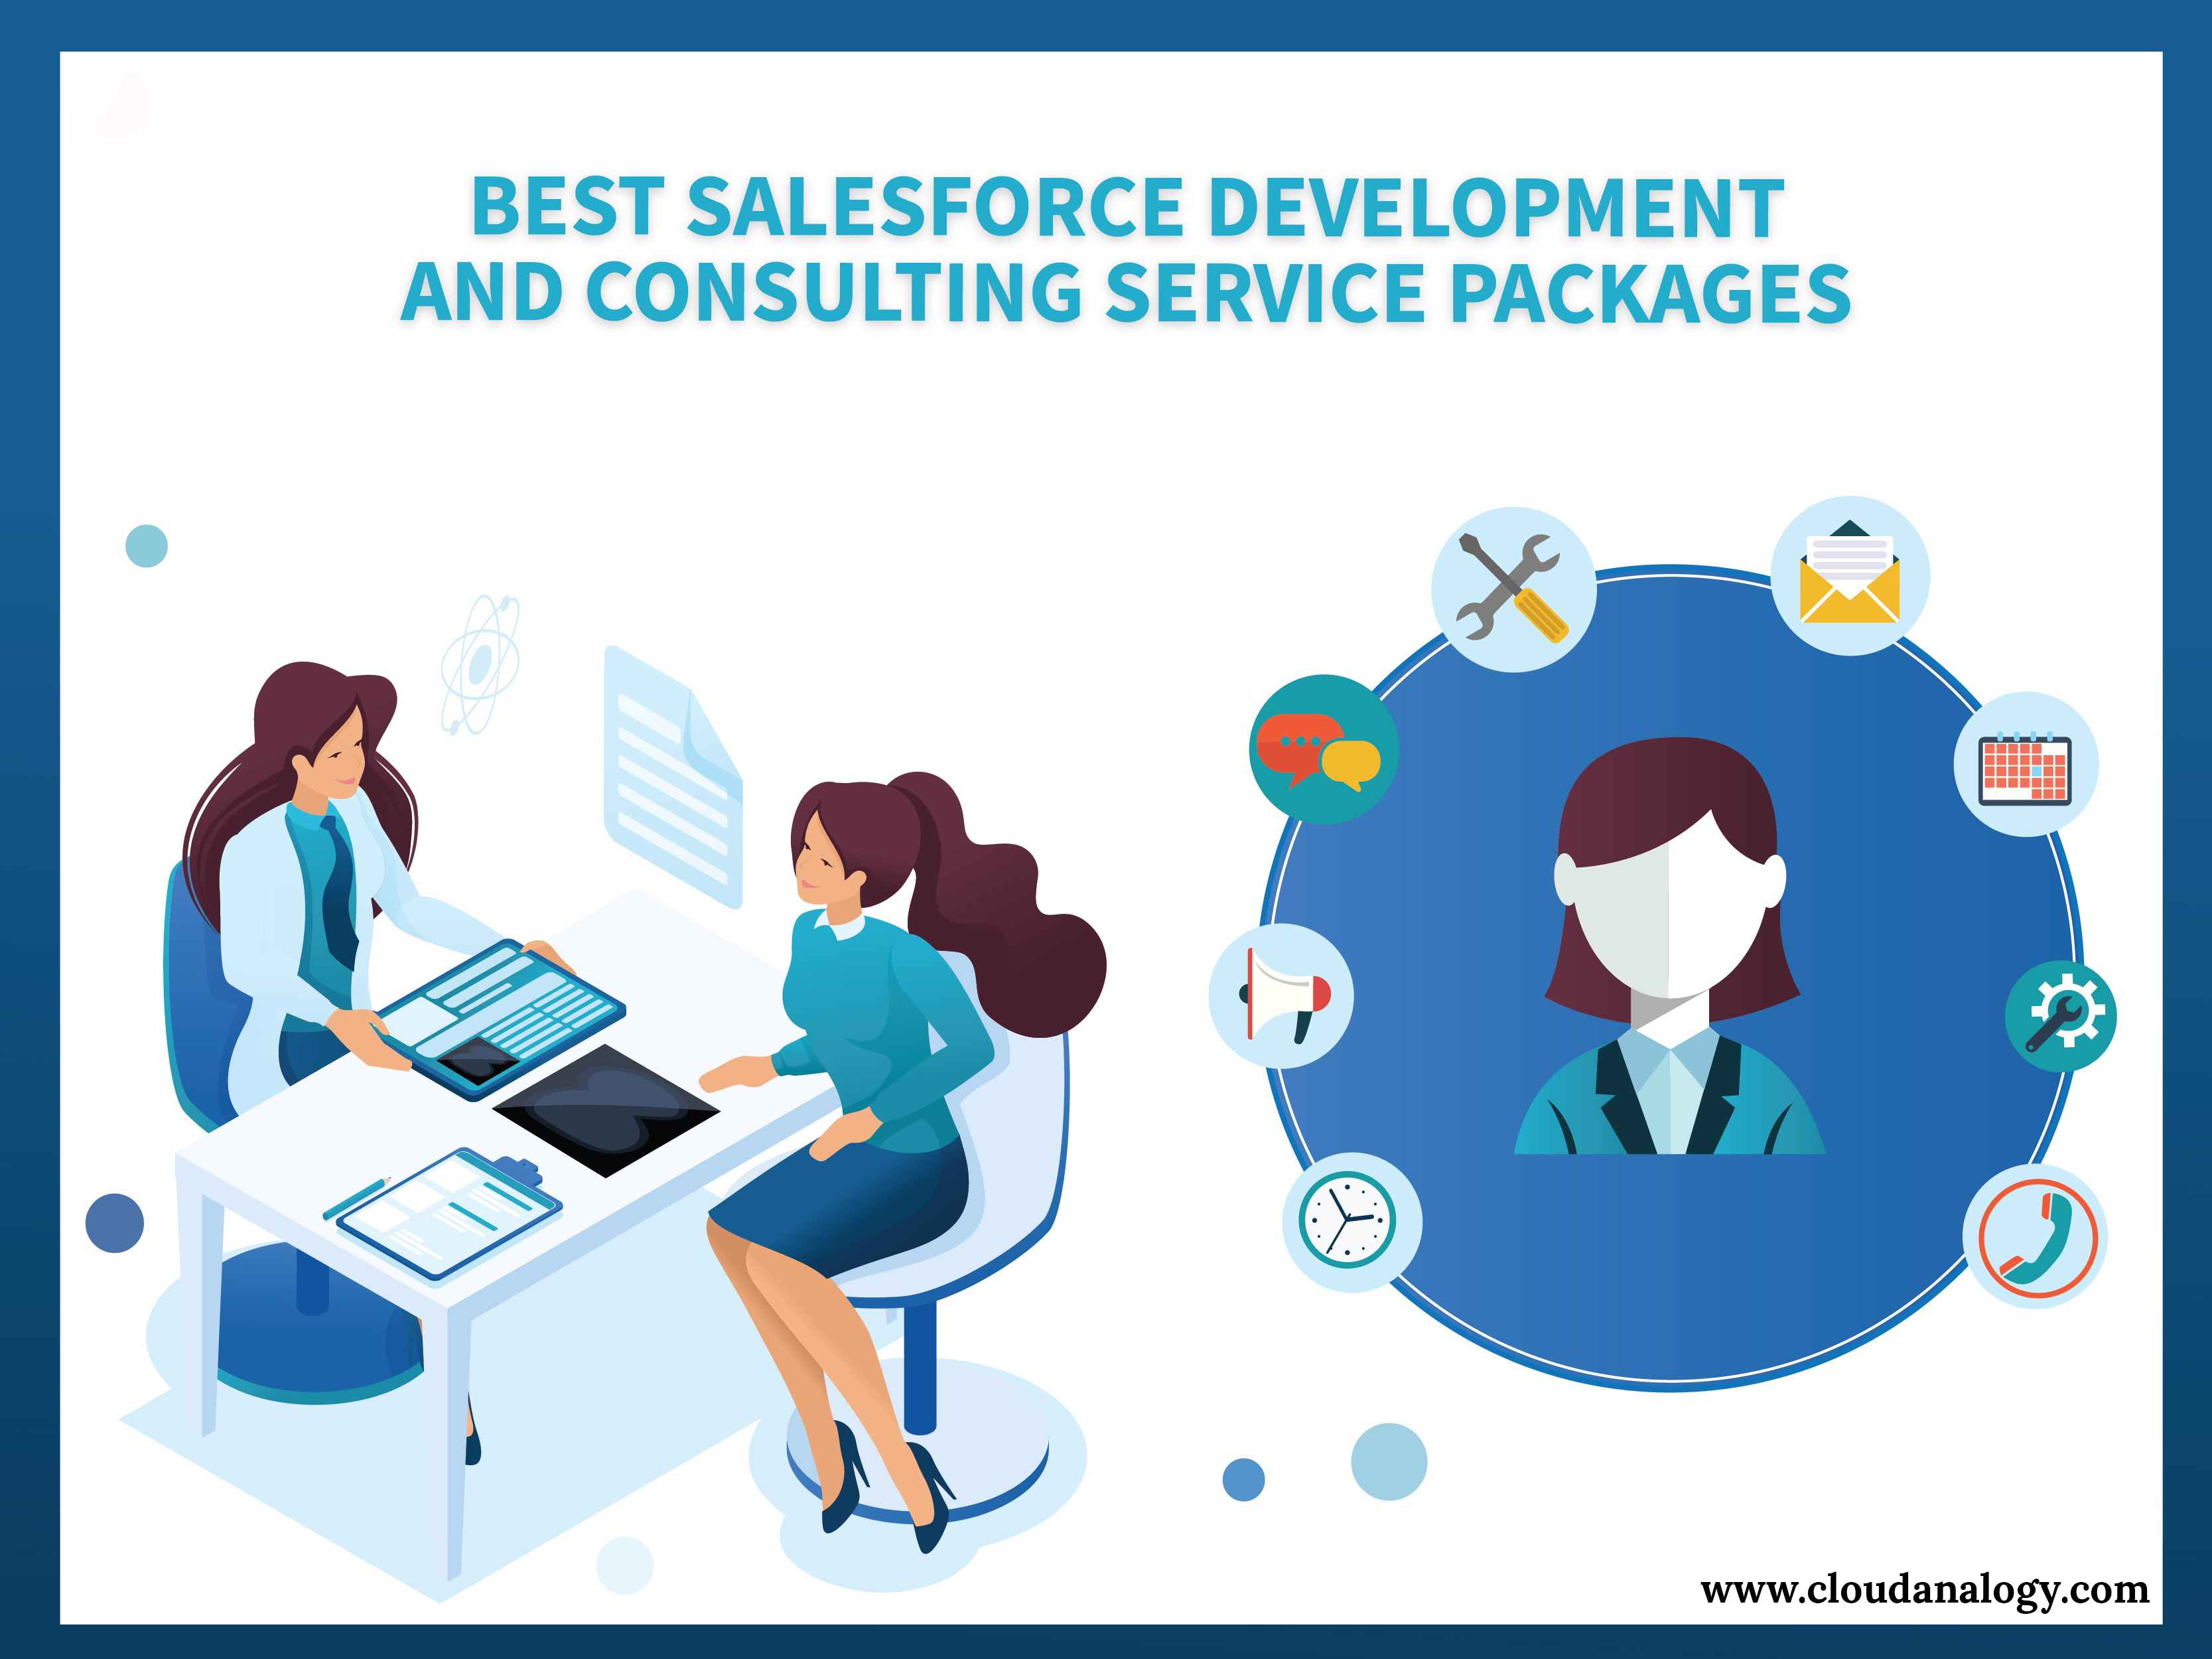 Best-Salesforce-Development-and-Consulting-Service-Packages-01